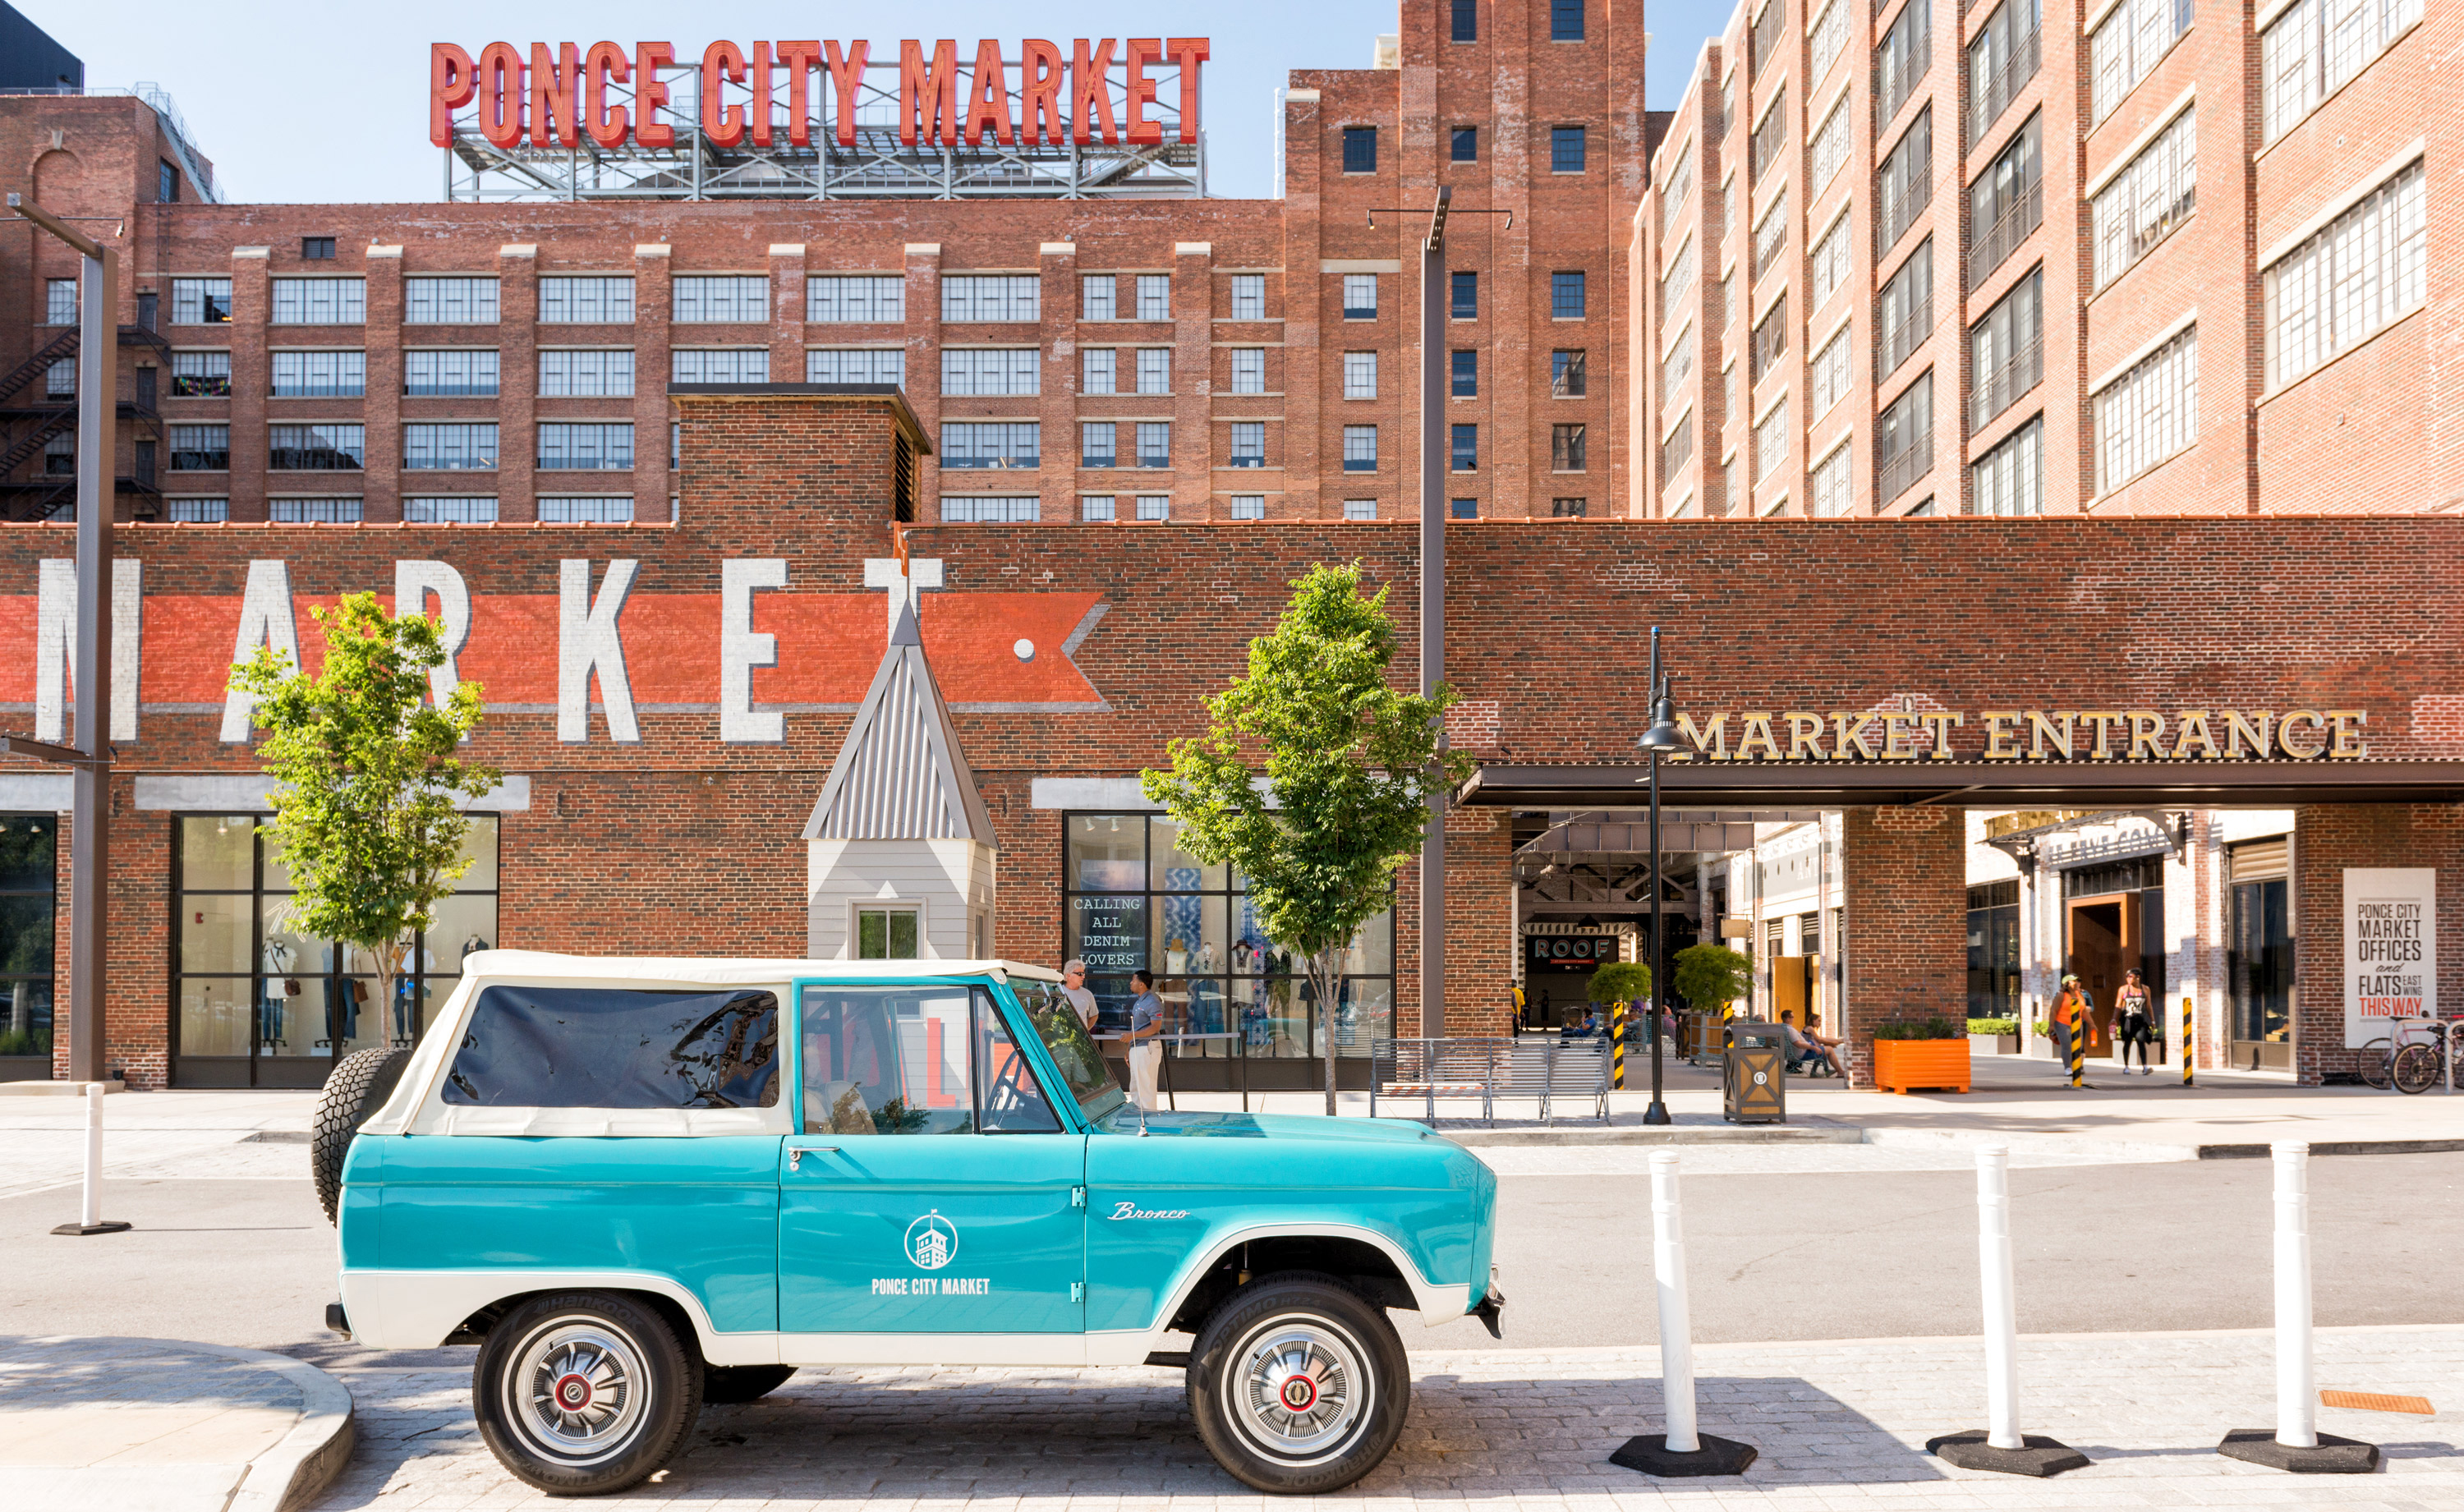 Leon, the 1967 Classic Ford Bronco parked in front of Ponce City Market.